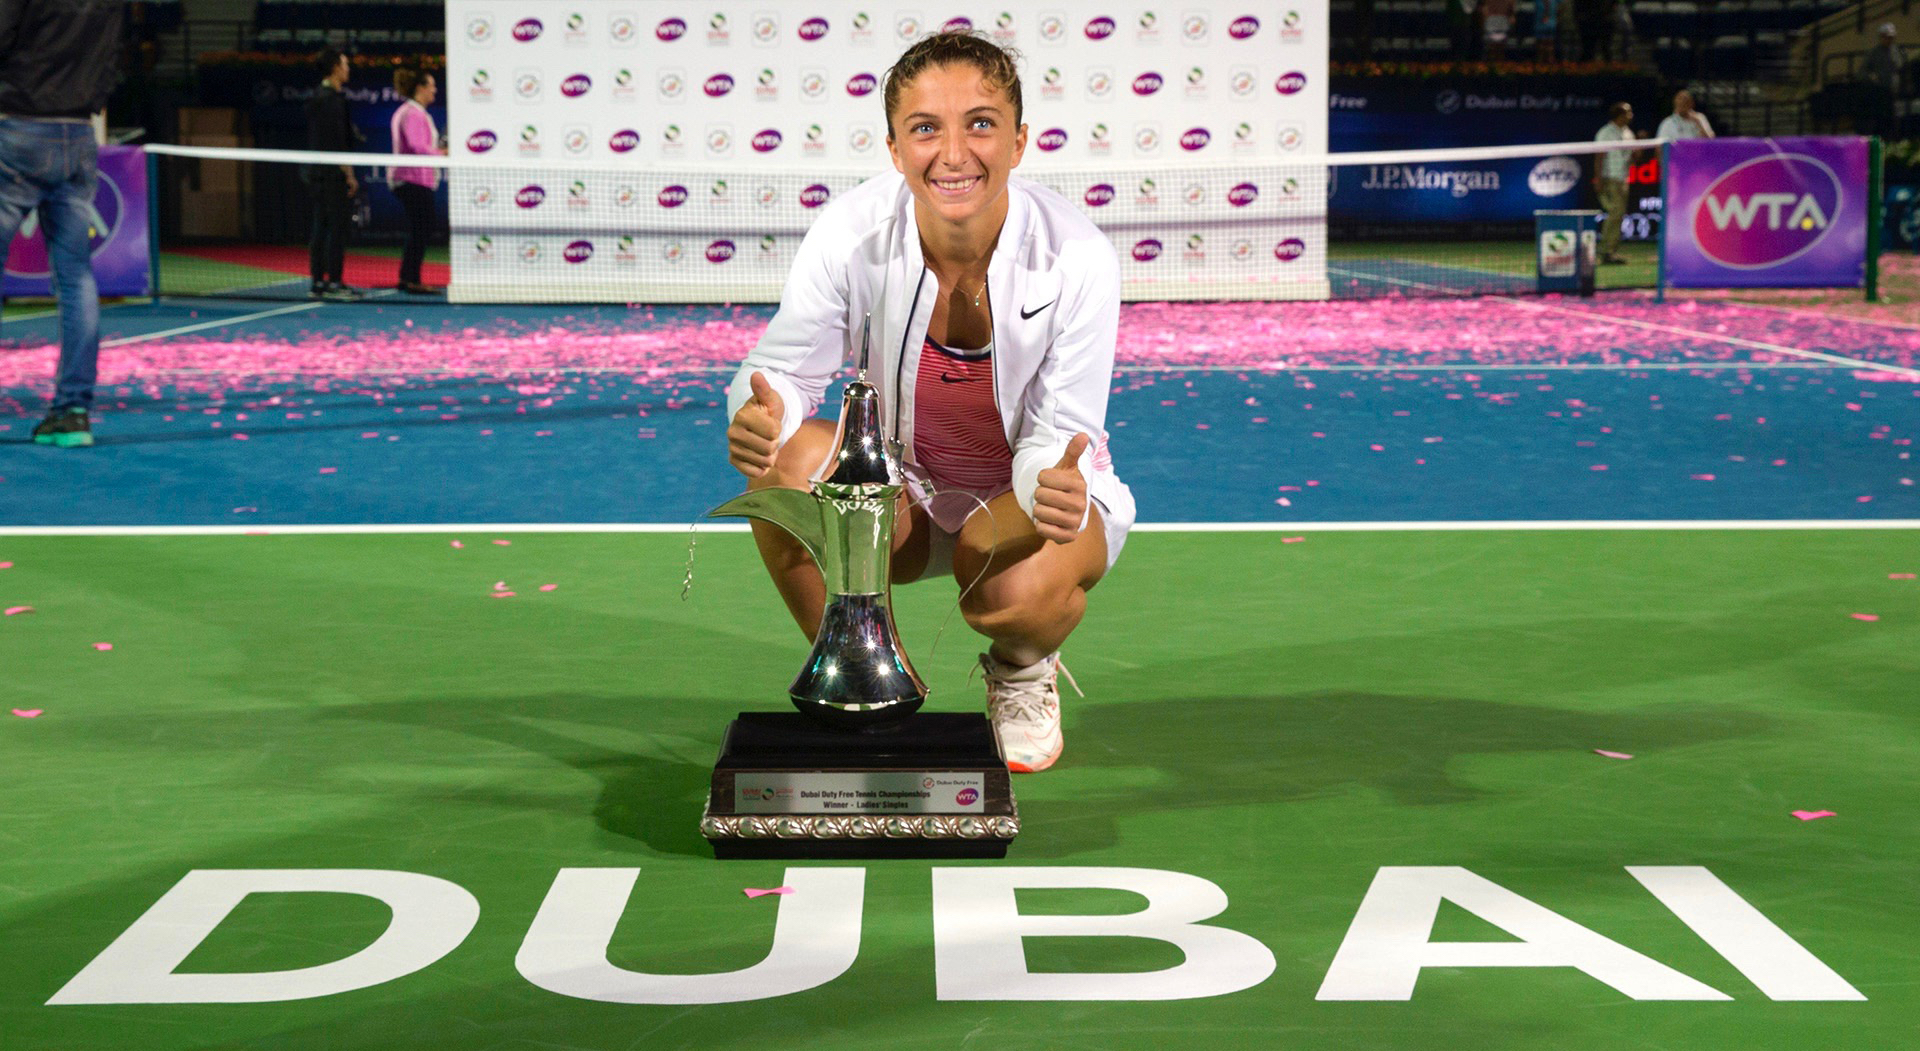 dubai-2016-wta-final-errani-trophy-wta